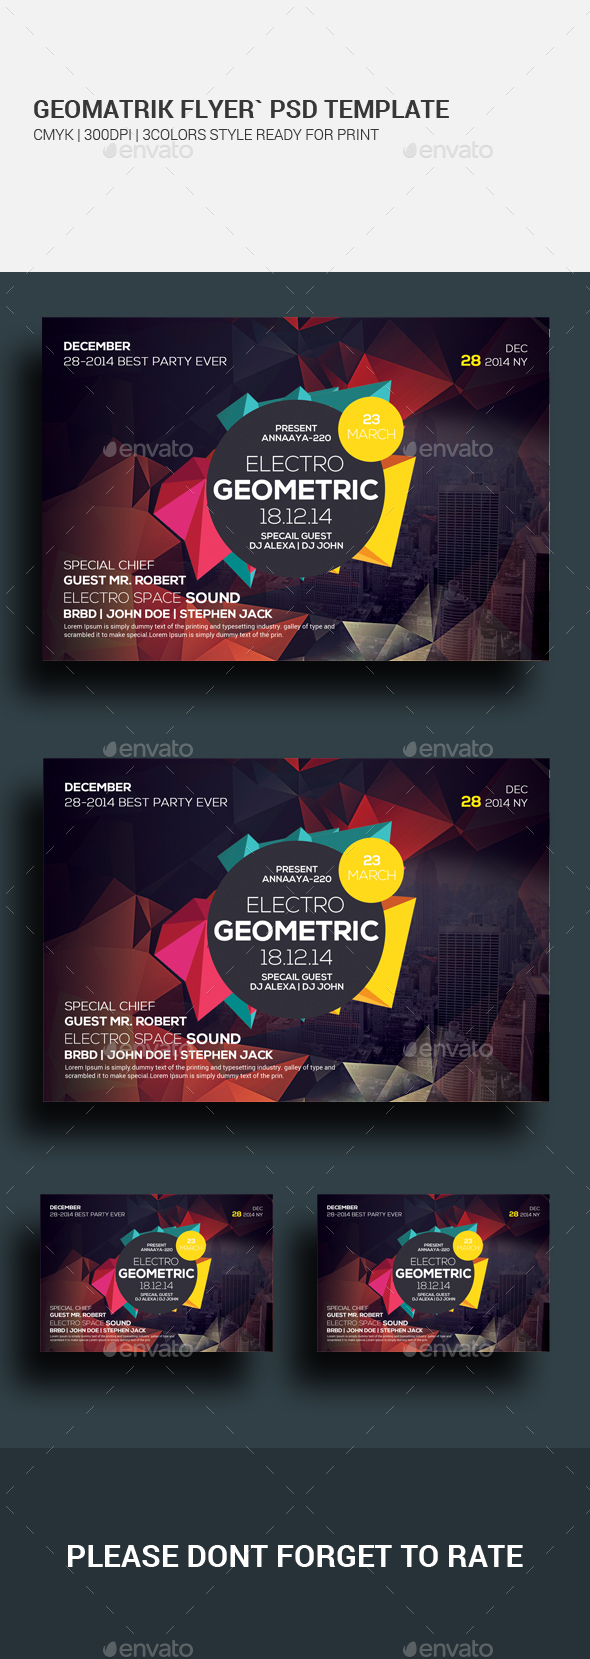 Geometric City Flyer Psd Template - Clubs & Parties Events